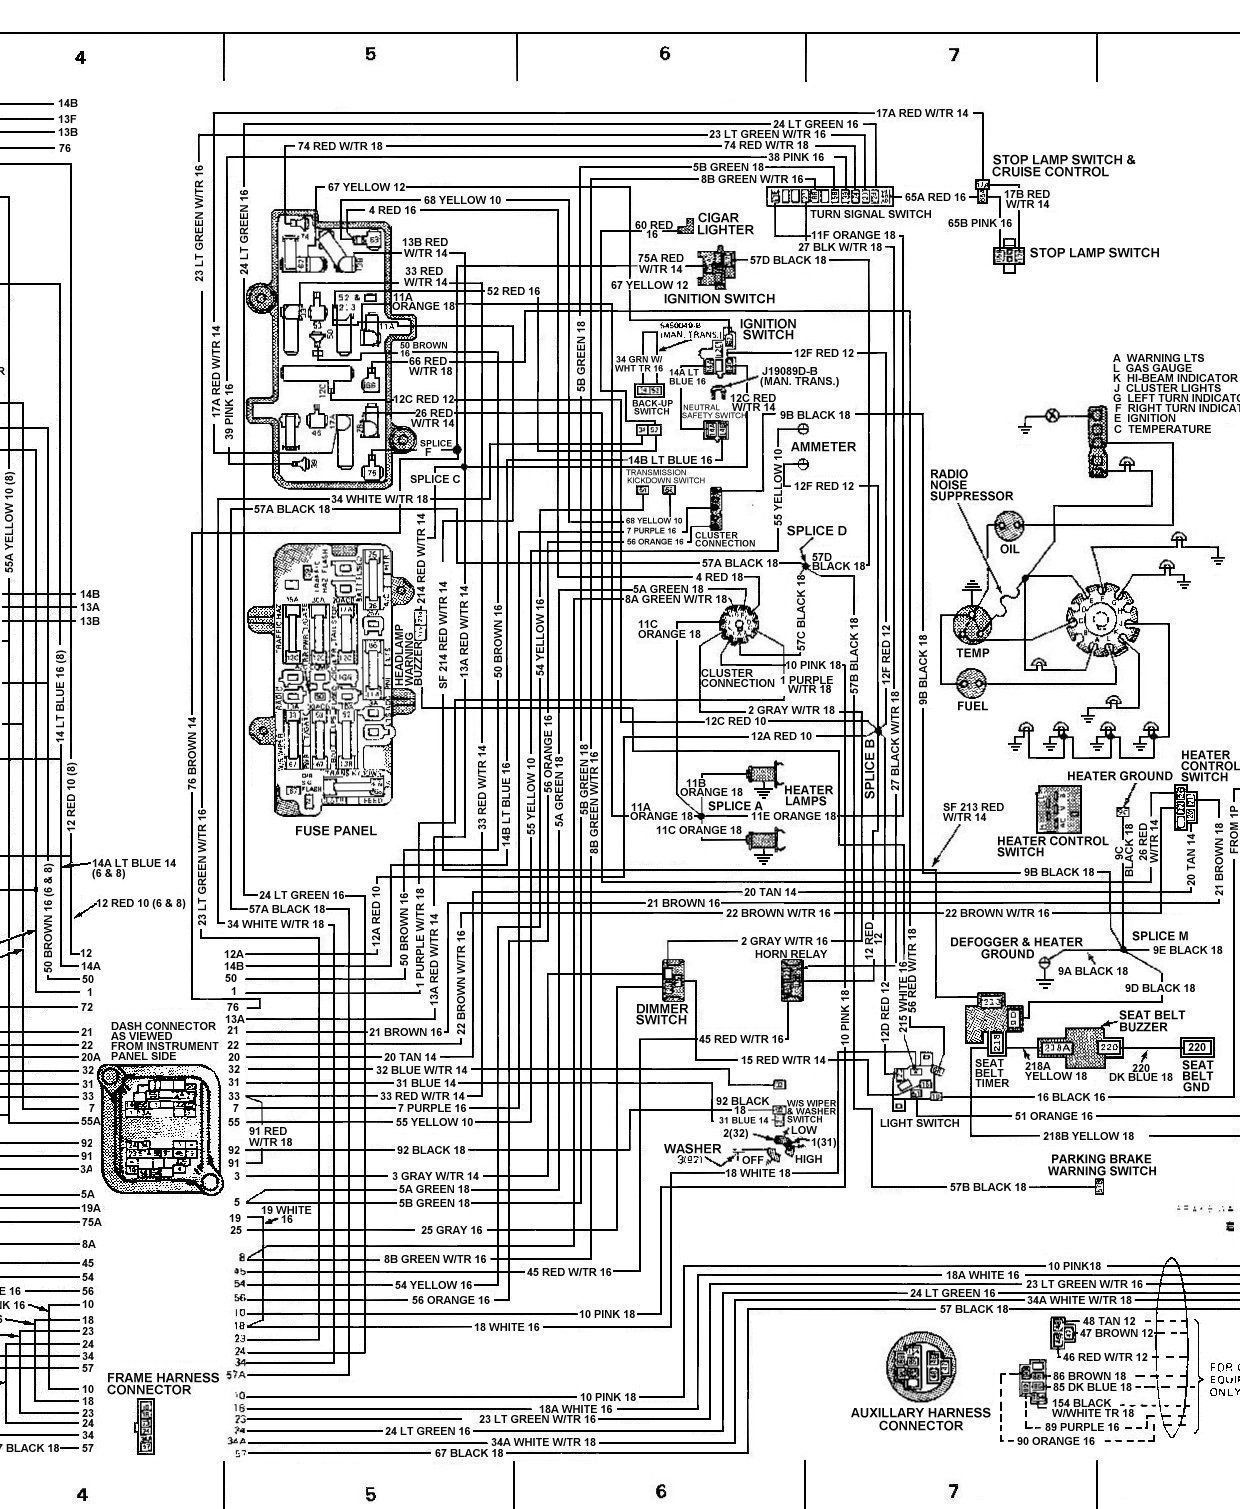 Toyota 1kz Te Wiring Harness Diagram also Viewtopic also Case 444 Wiring Diagram moreover Assuming Trailer Socketstyle moreover Toyota. on toyota 1kz te wiring harness diagram